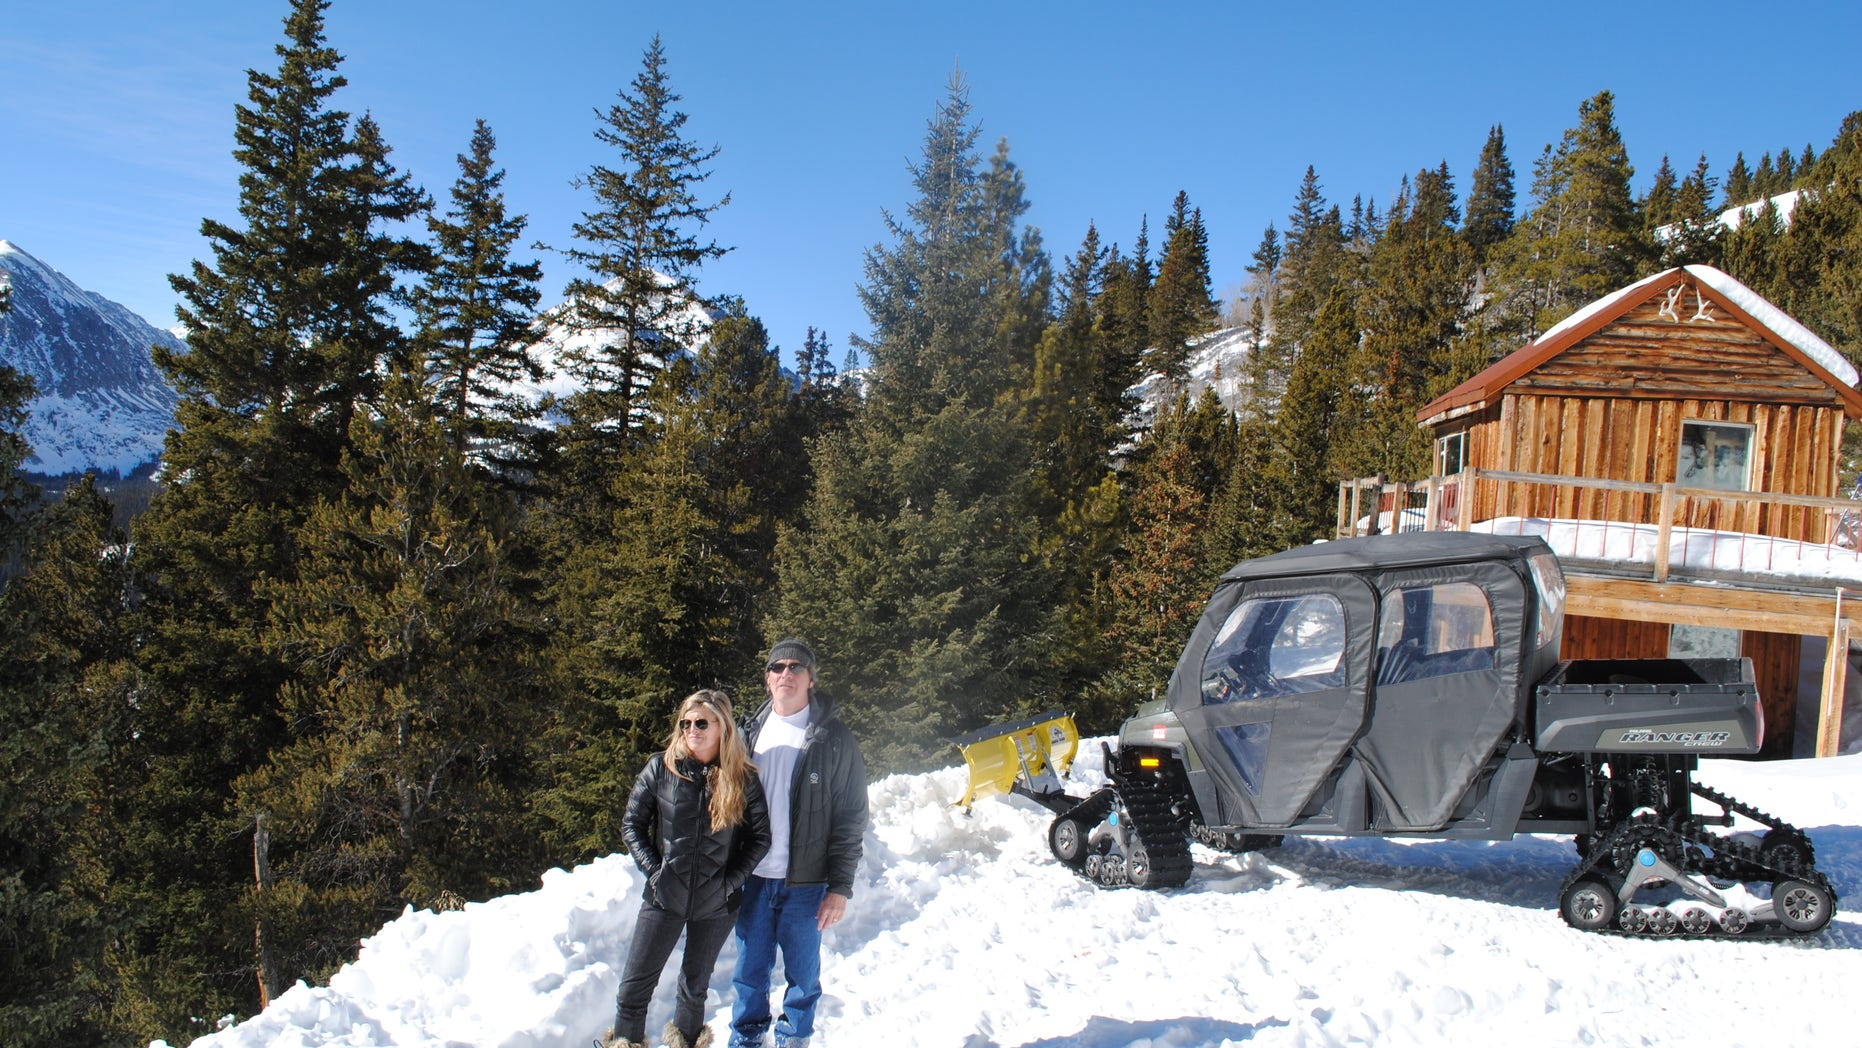 Jan. 24, 2014: Andy and Ceil Barrie stand for a photo next to their mining cabin near Breckenridge, Colo.